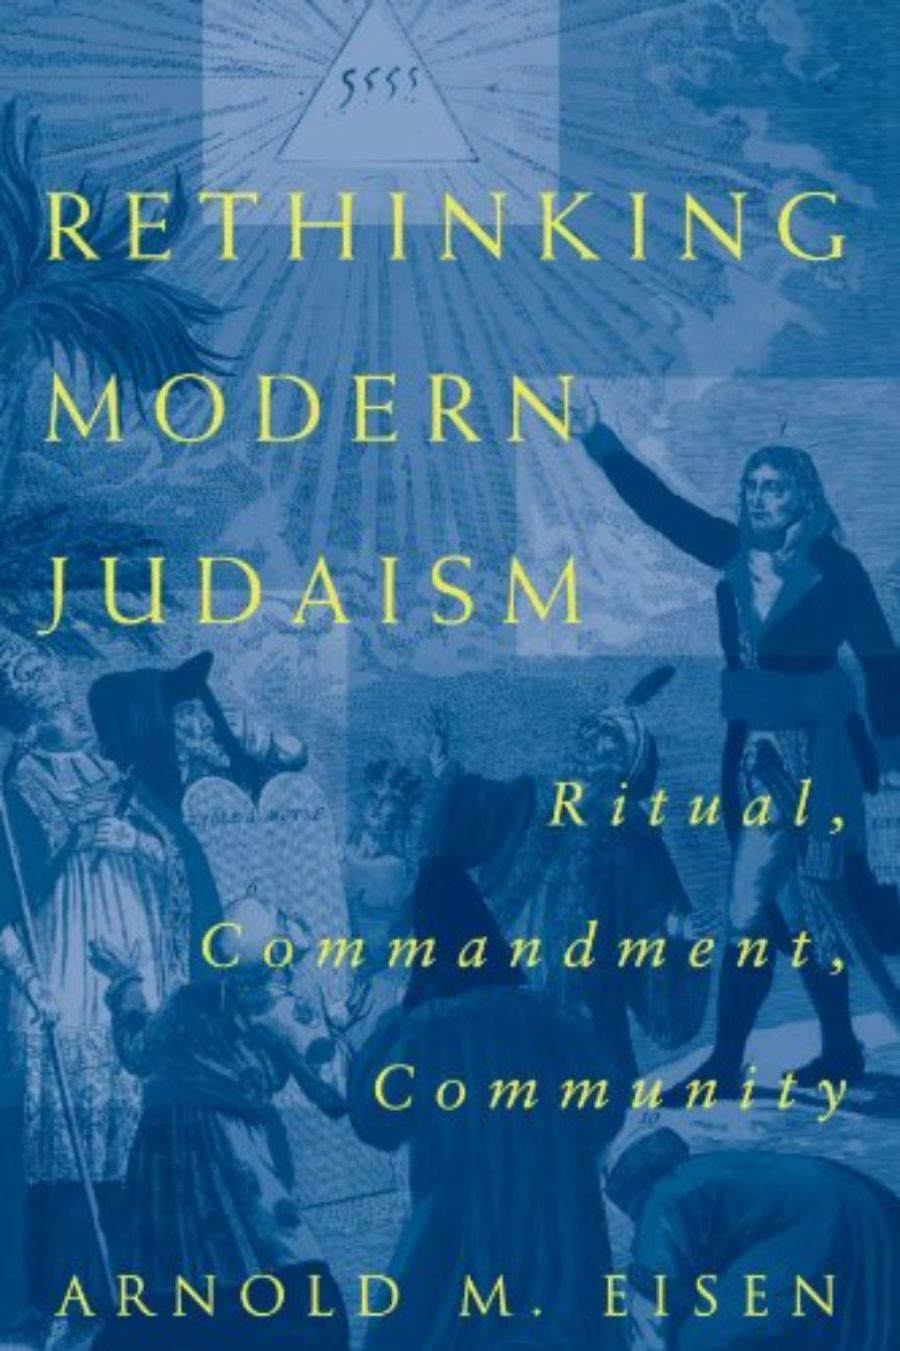 Cover of Rethinking Modern Judaism: Ritual, Commandment, Community (Chicago Studies in the History of Judaism)